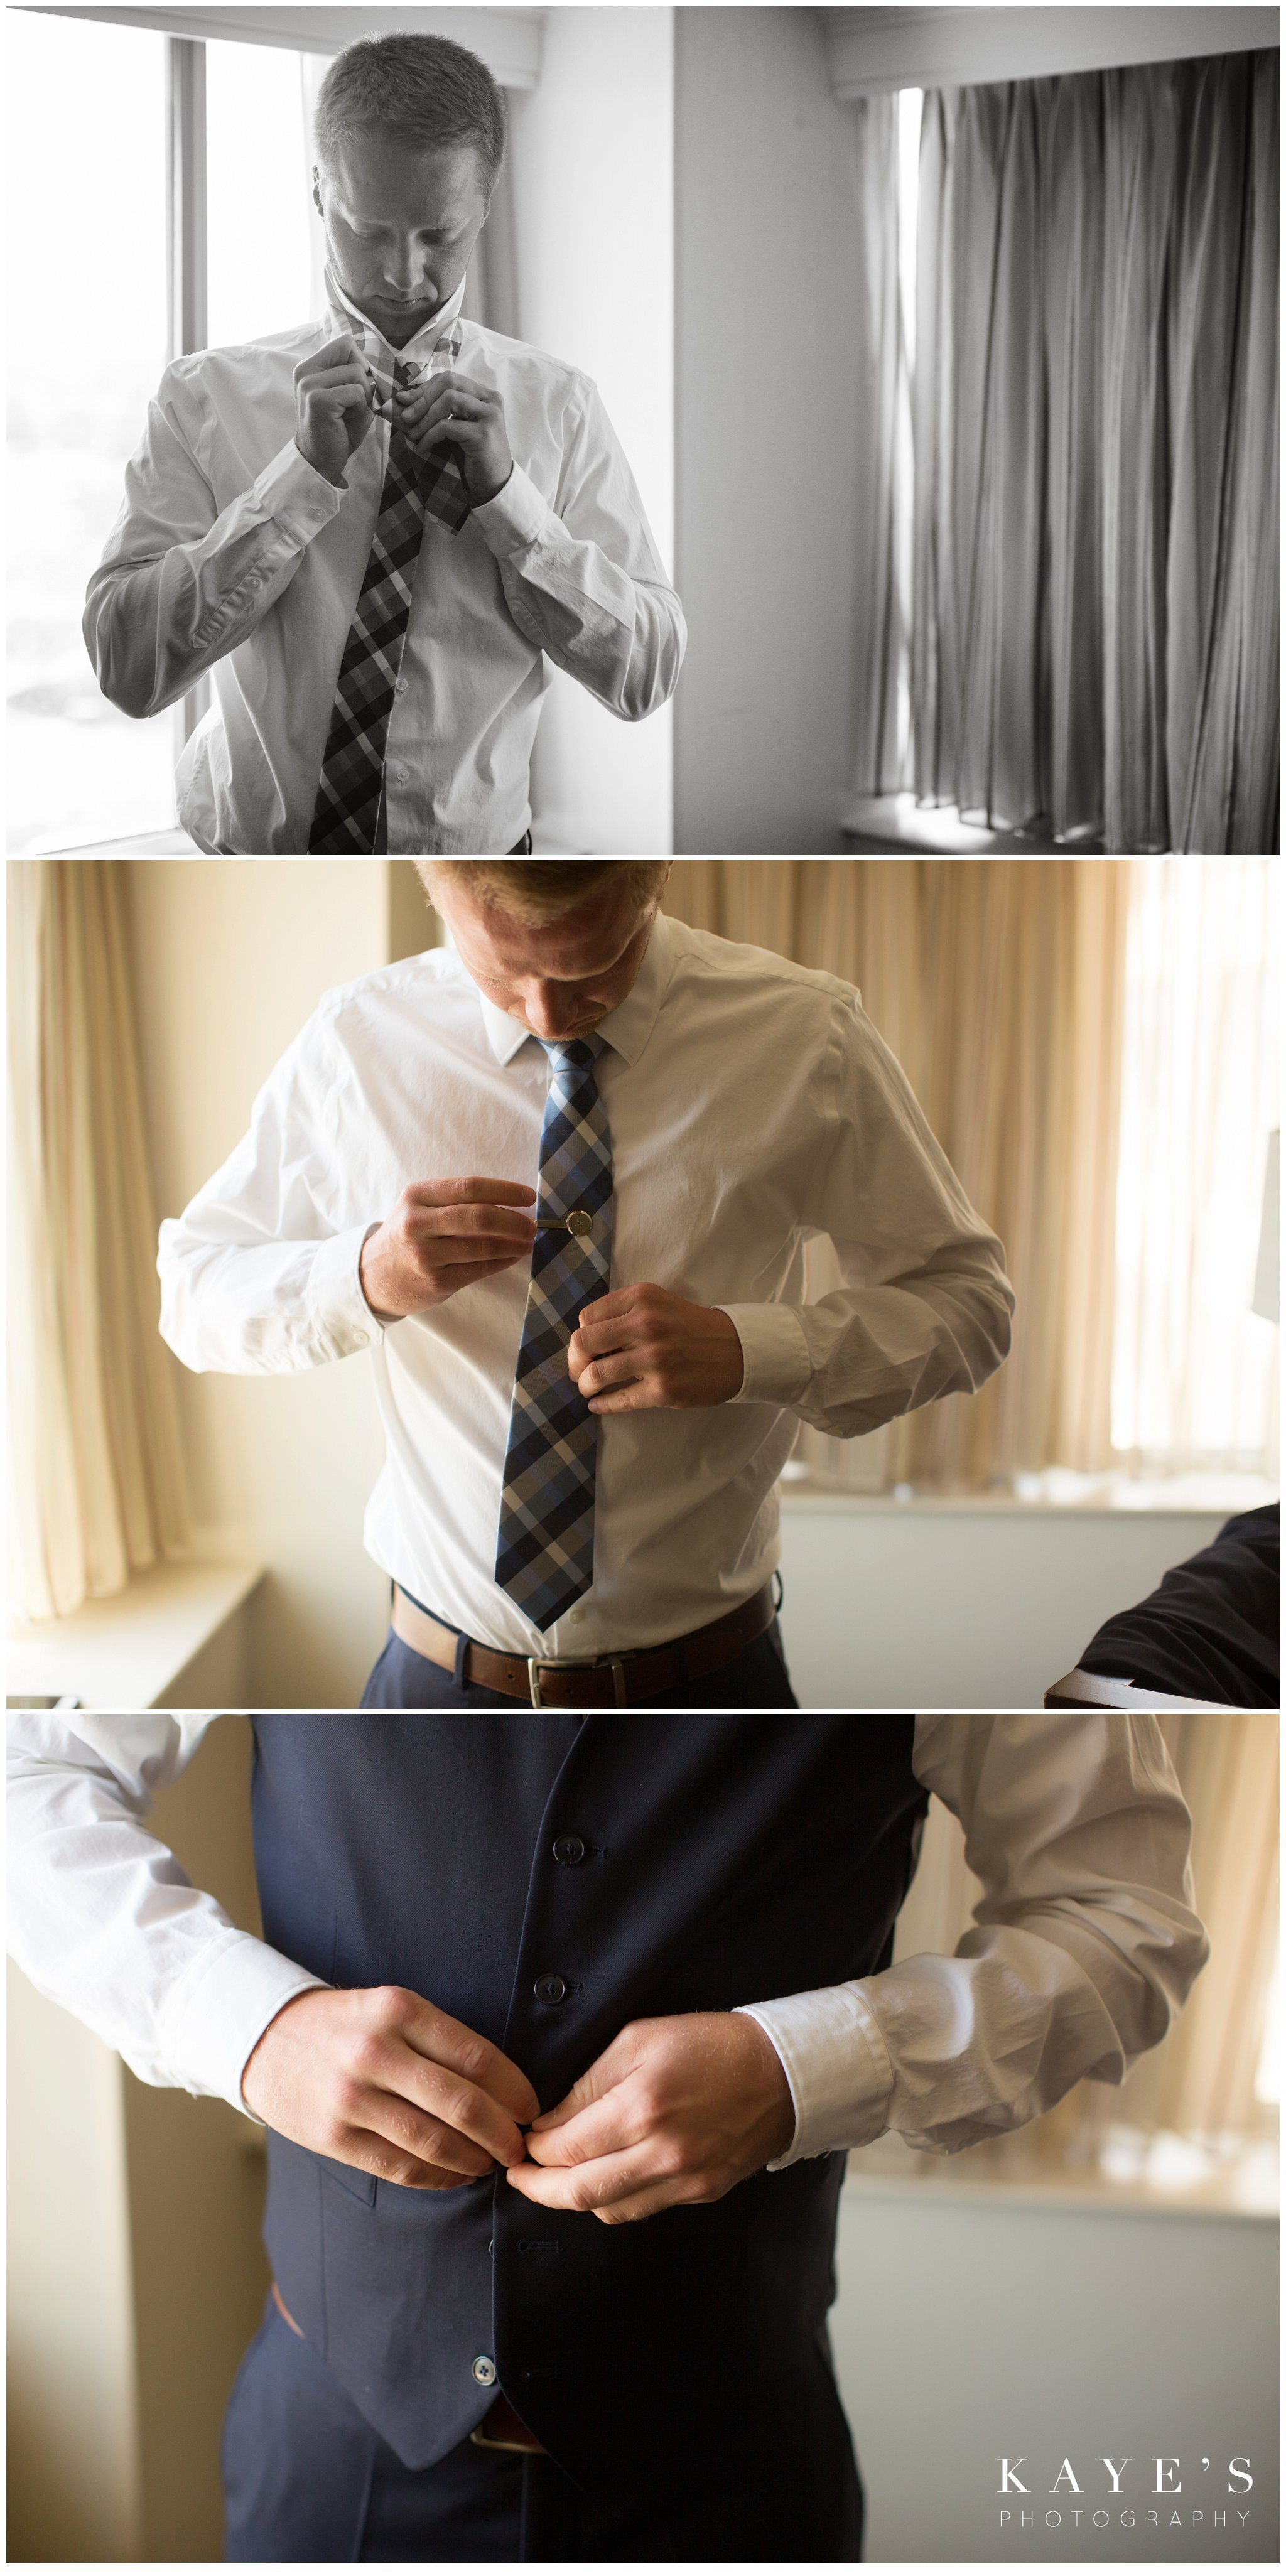 groom details and getting ready in hotel room during wedding photos in plymouth michigan